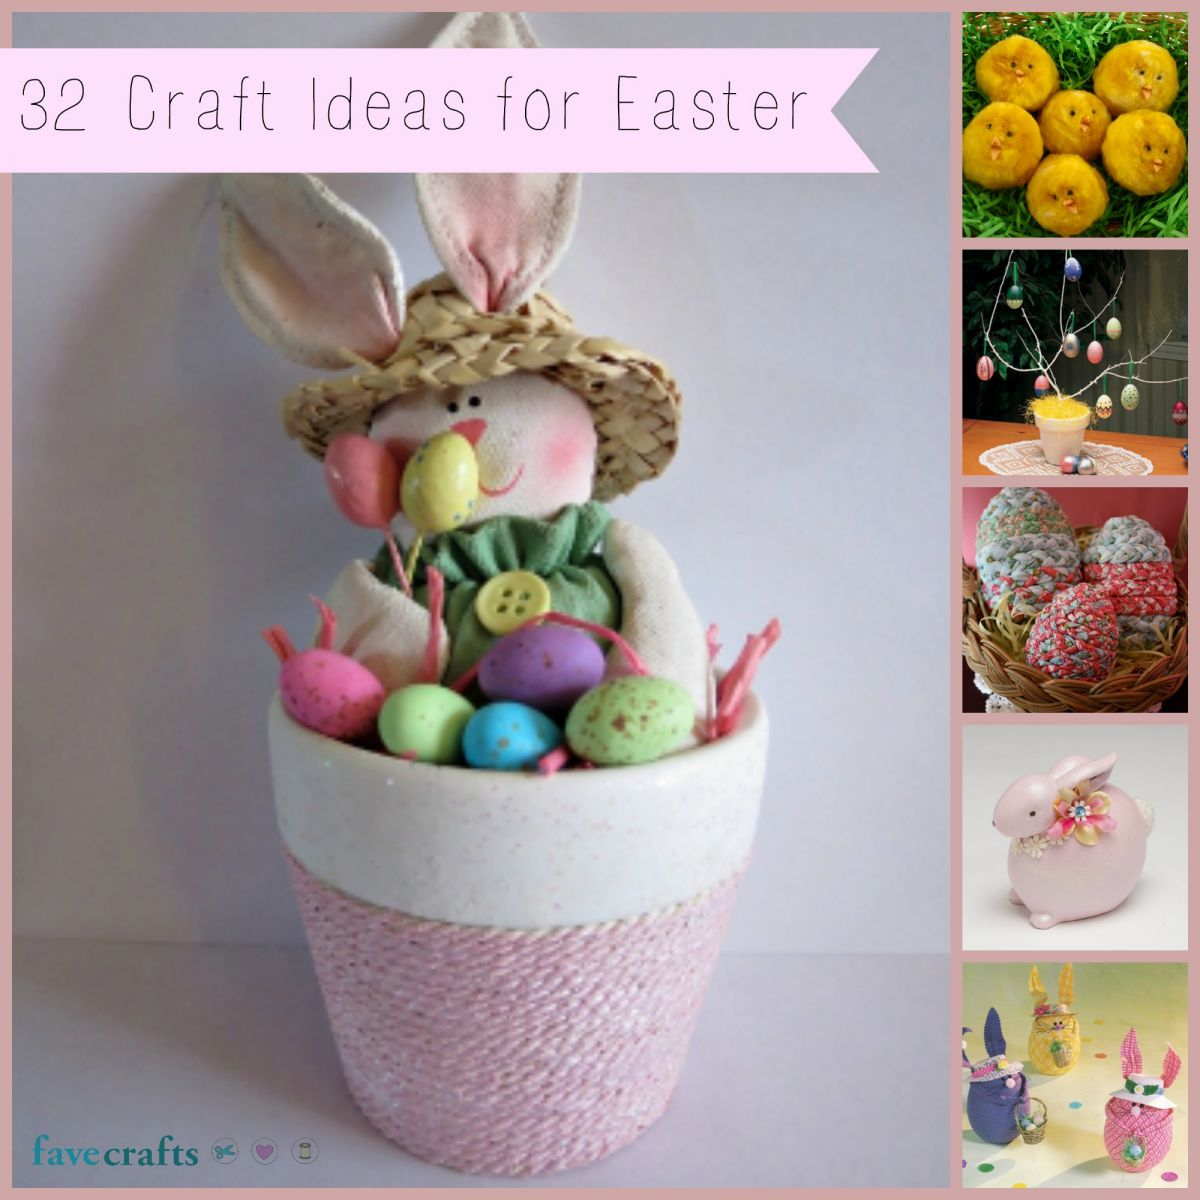 32 Craft Ideas for Easter